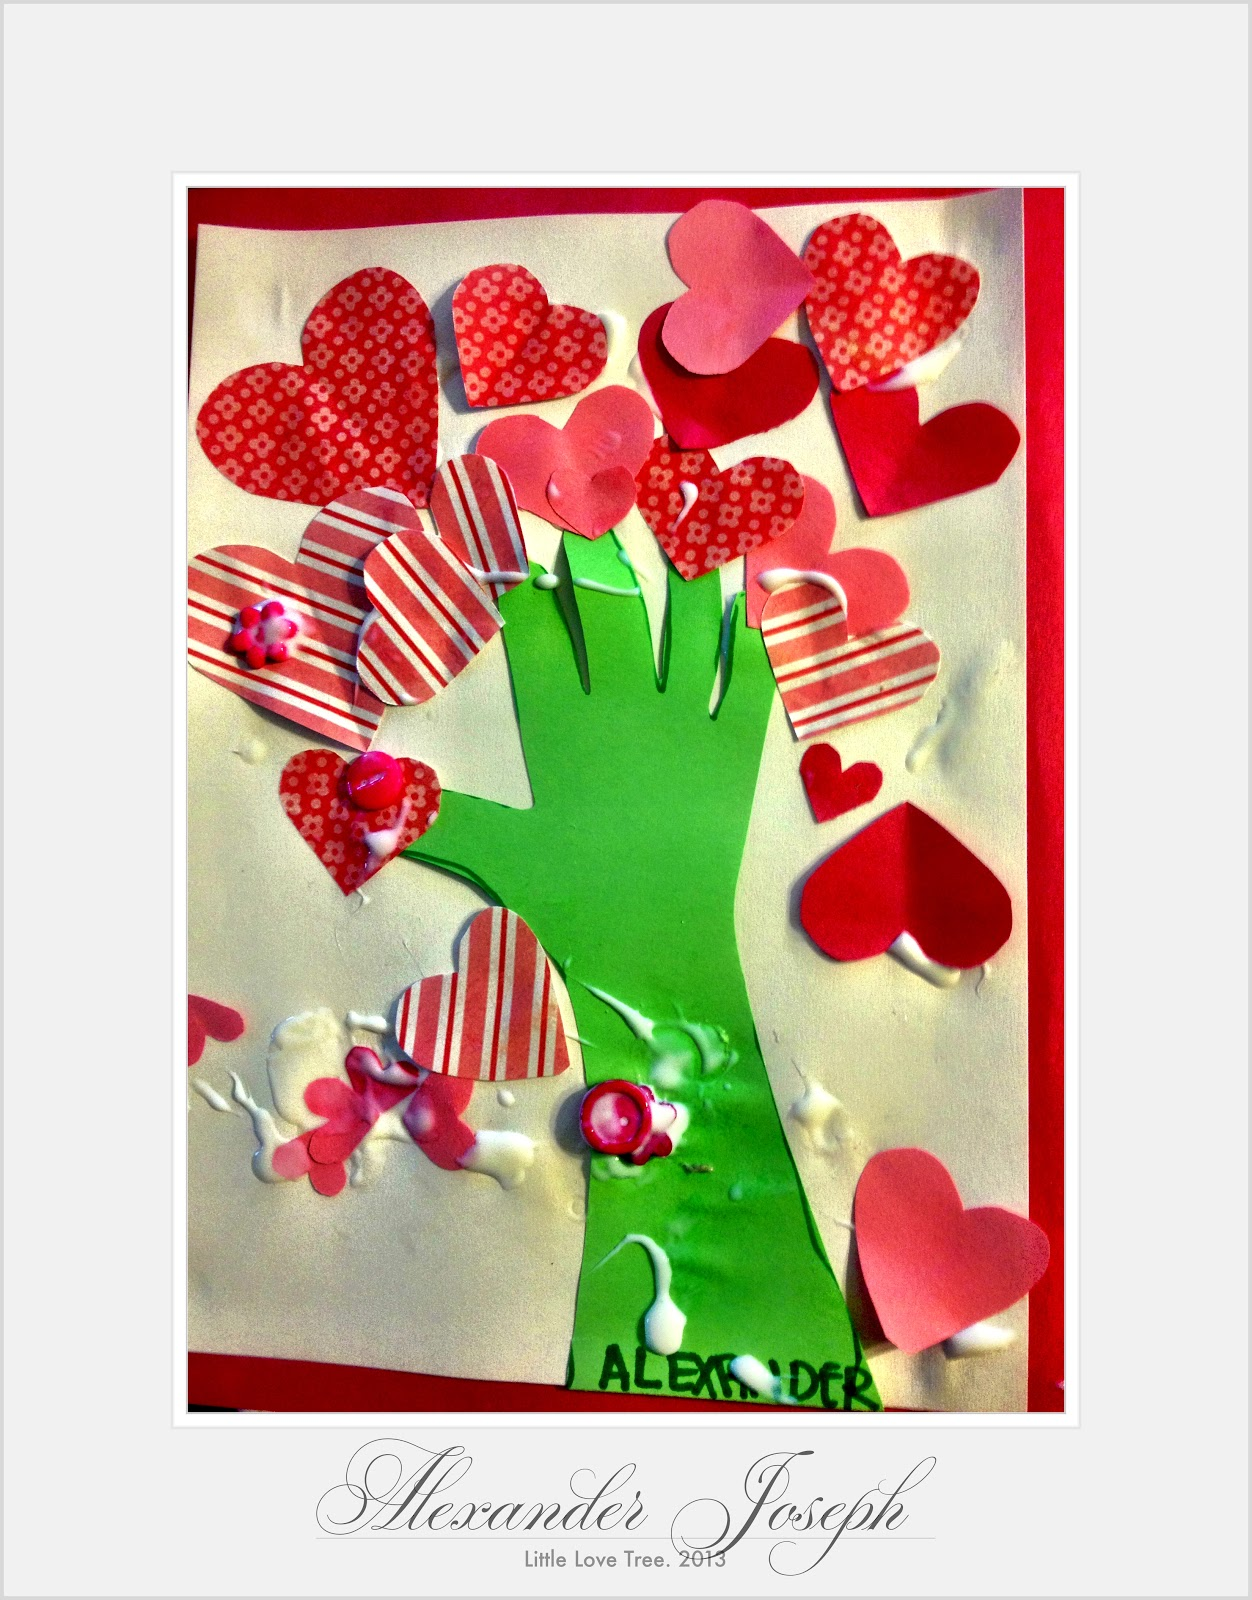 4 Times The Fun Little Love Trees